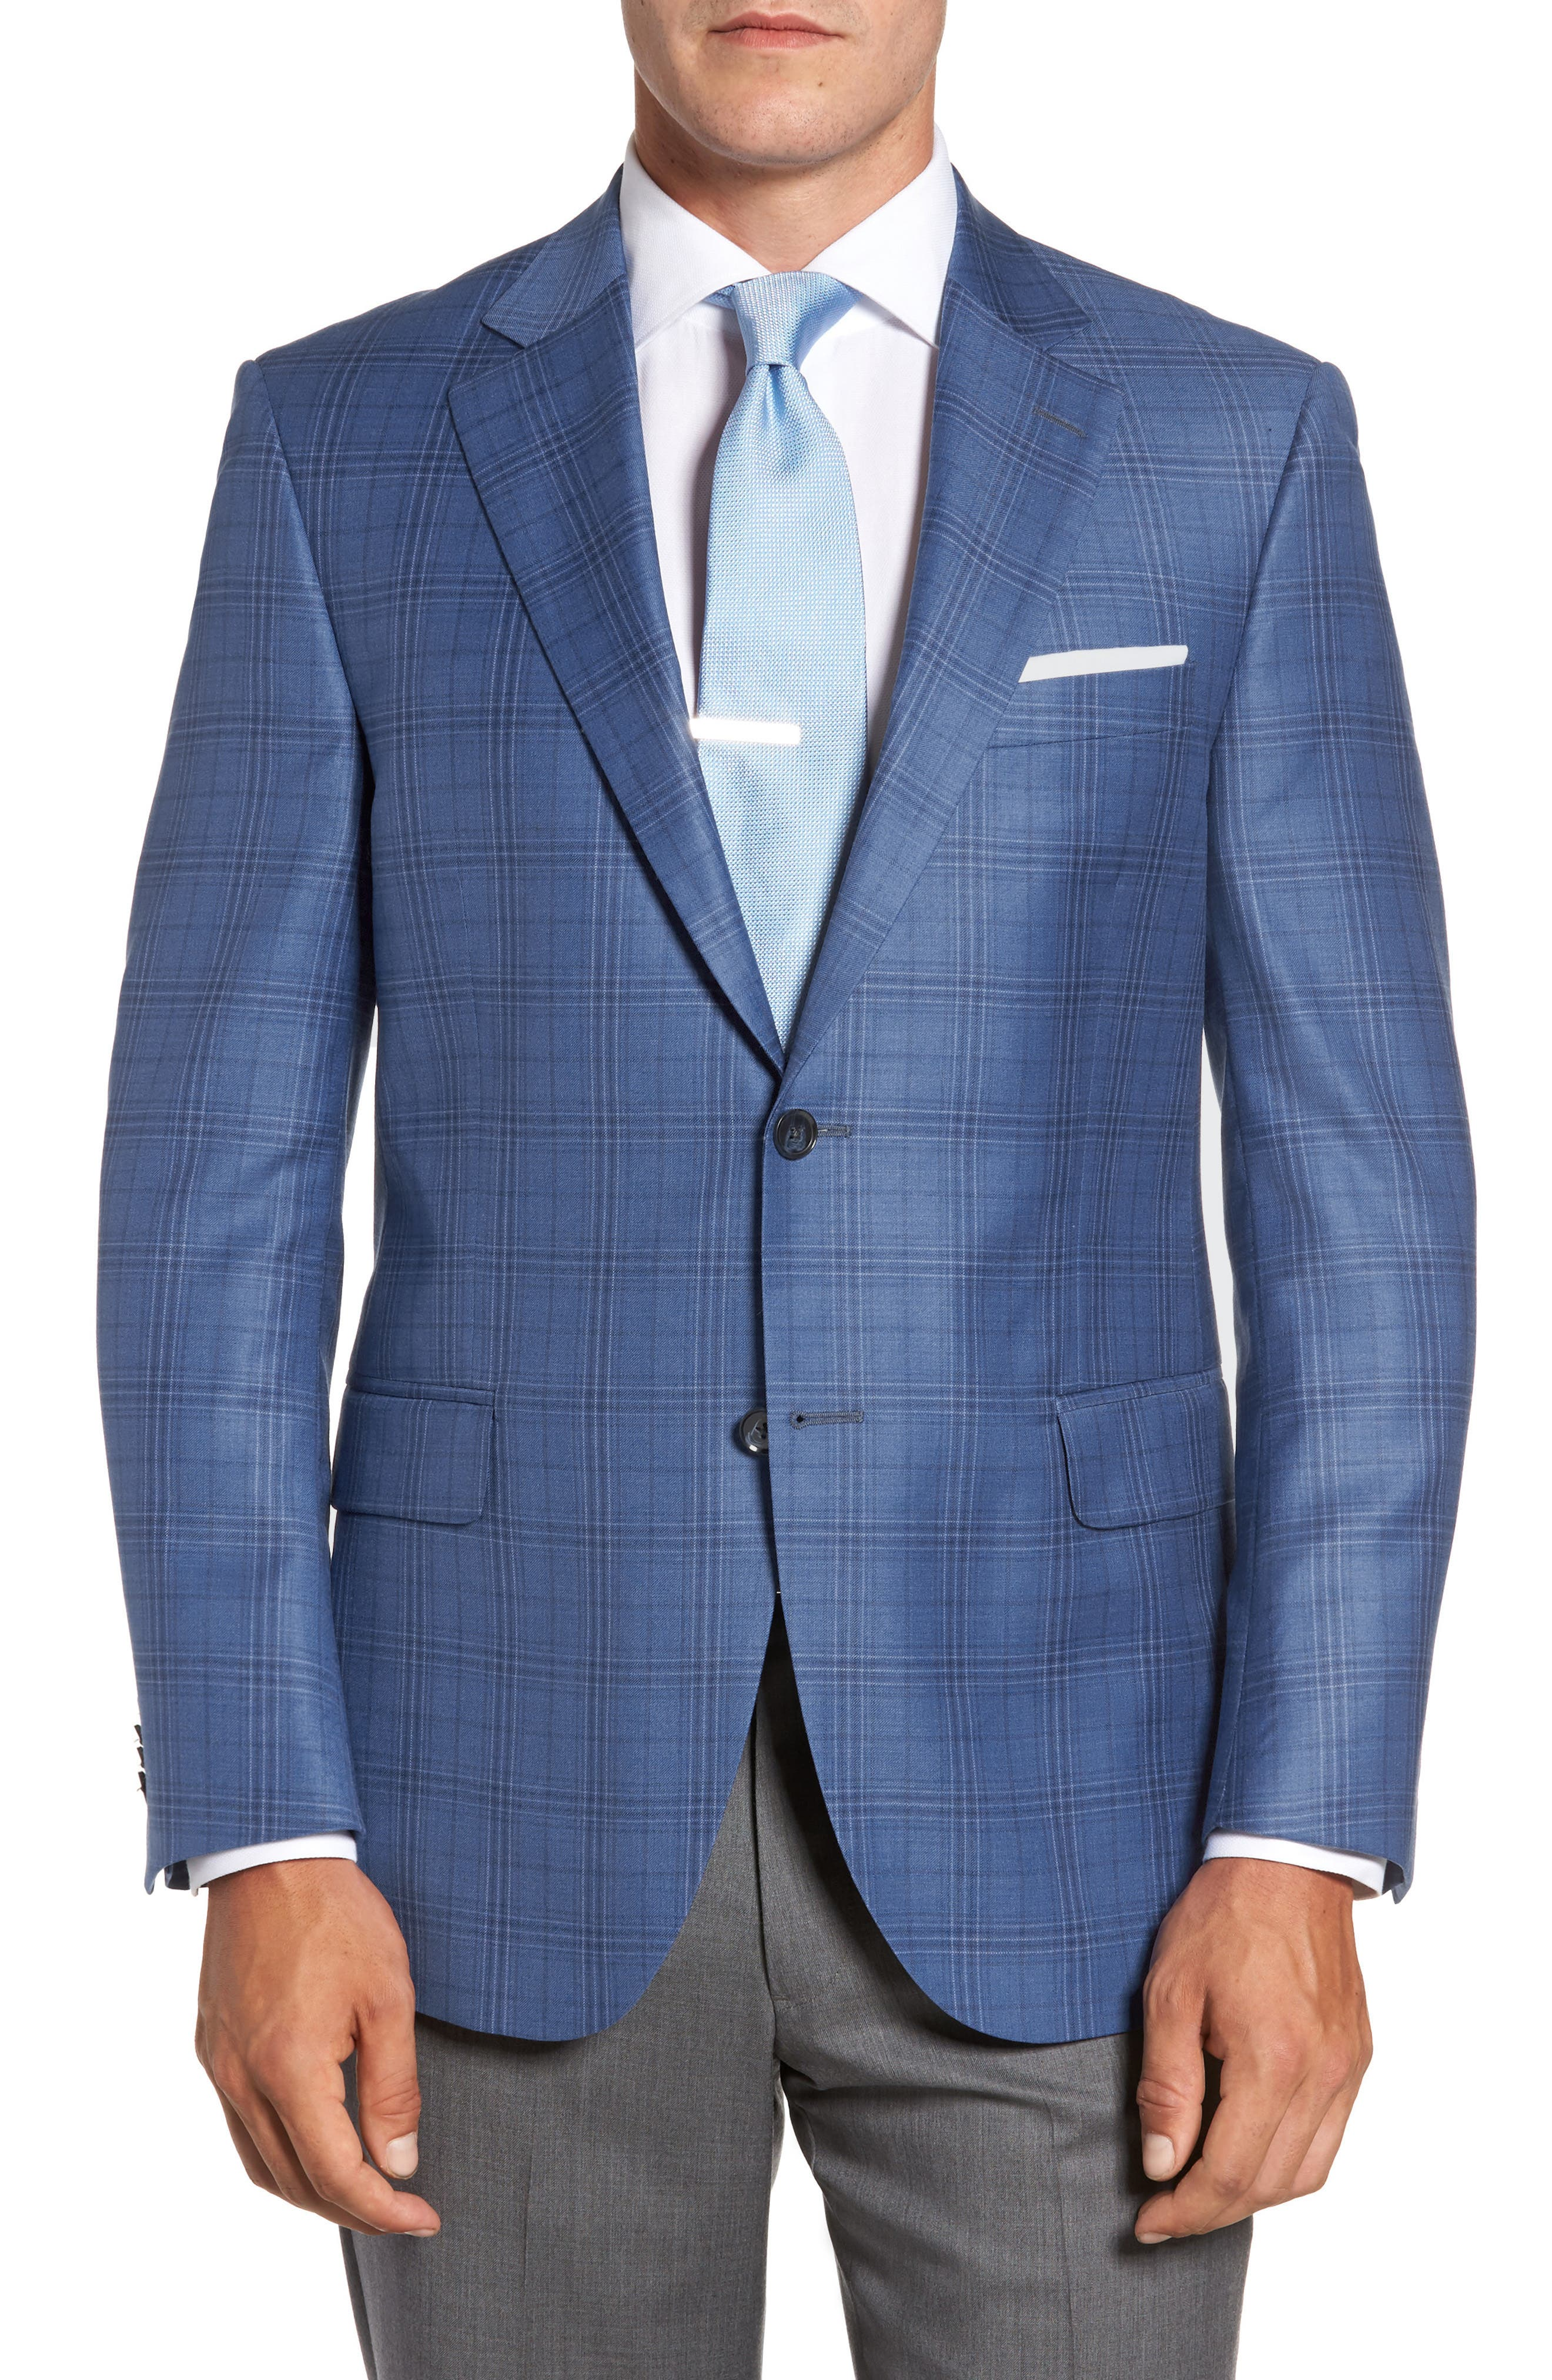 Alternate Image 1 Selected - Peter Millar Flynn Classic Fit Plaid Wool Sport Coat